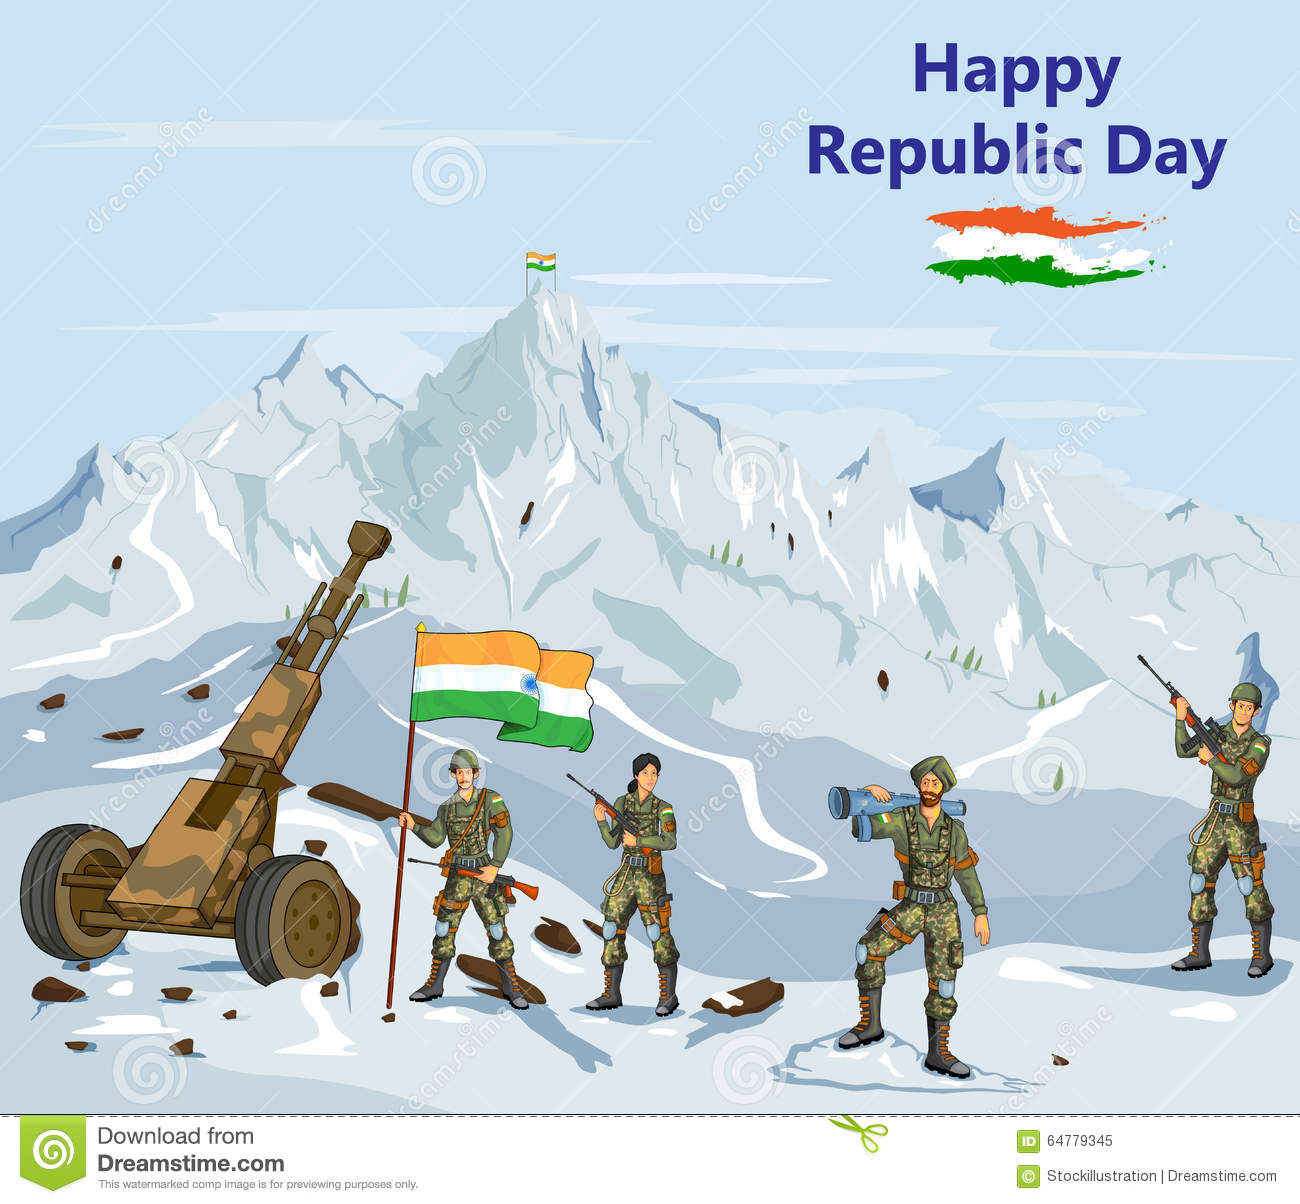 army day of india I love india army lover air force status dreem air force join air force air force status air force top video army lover.